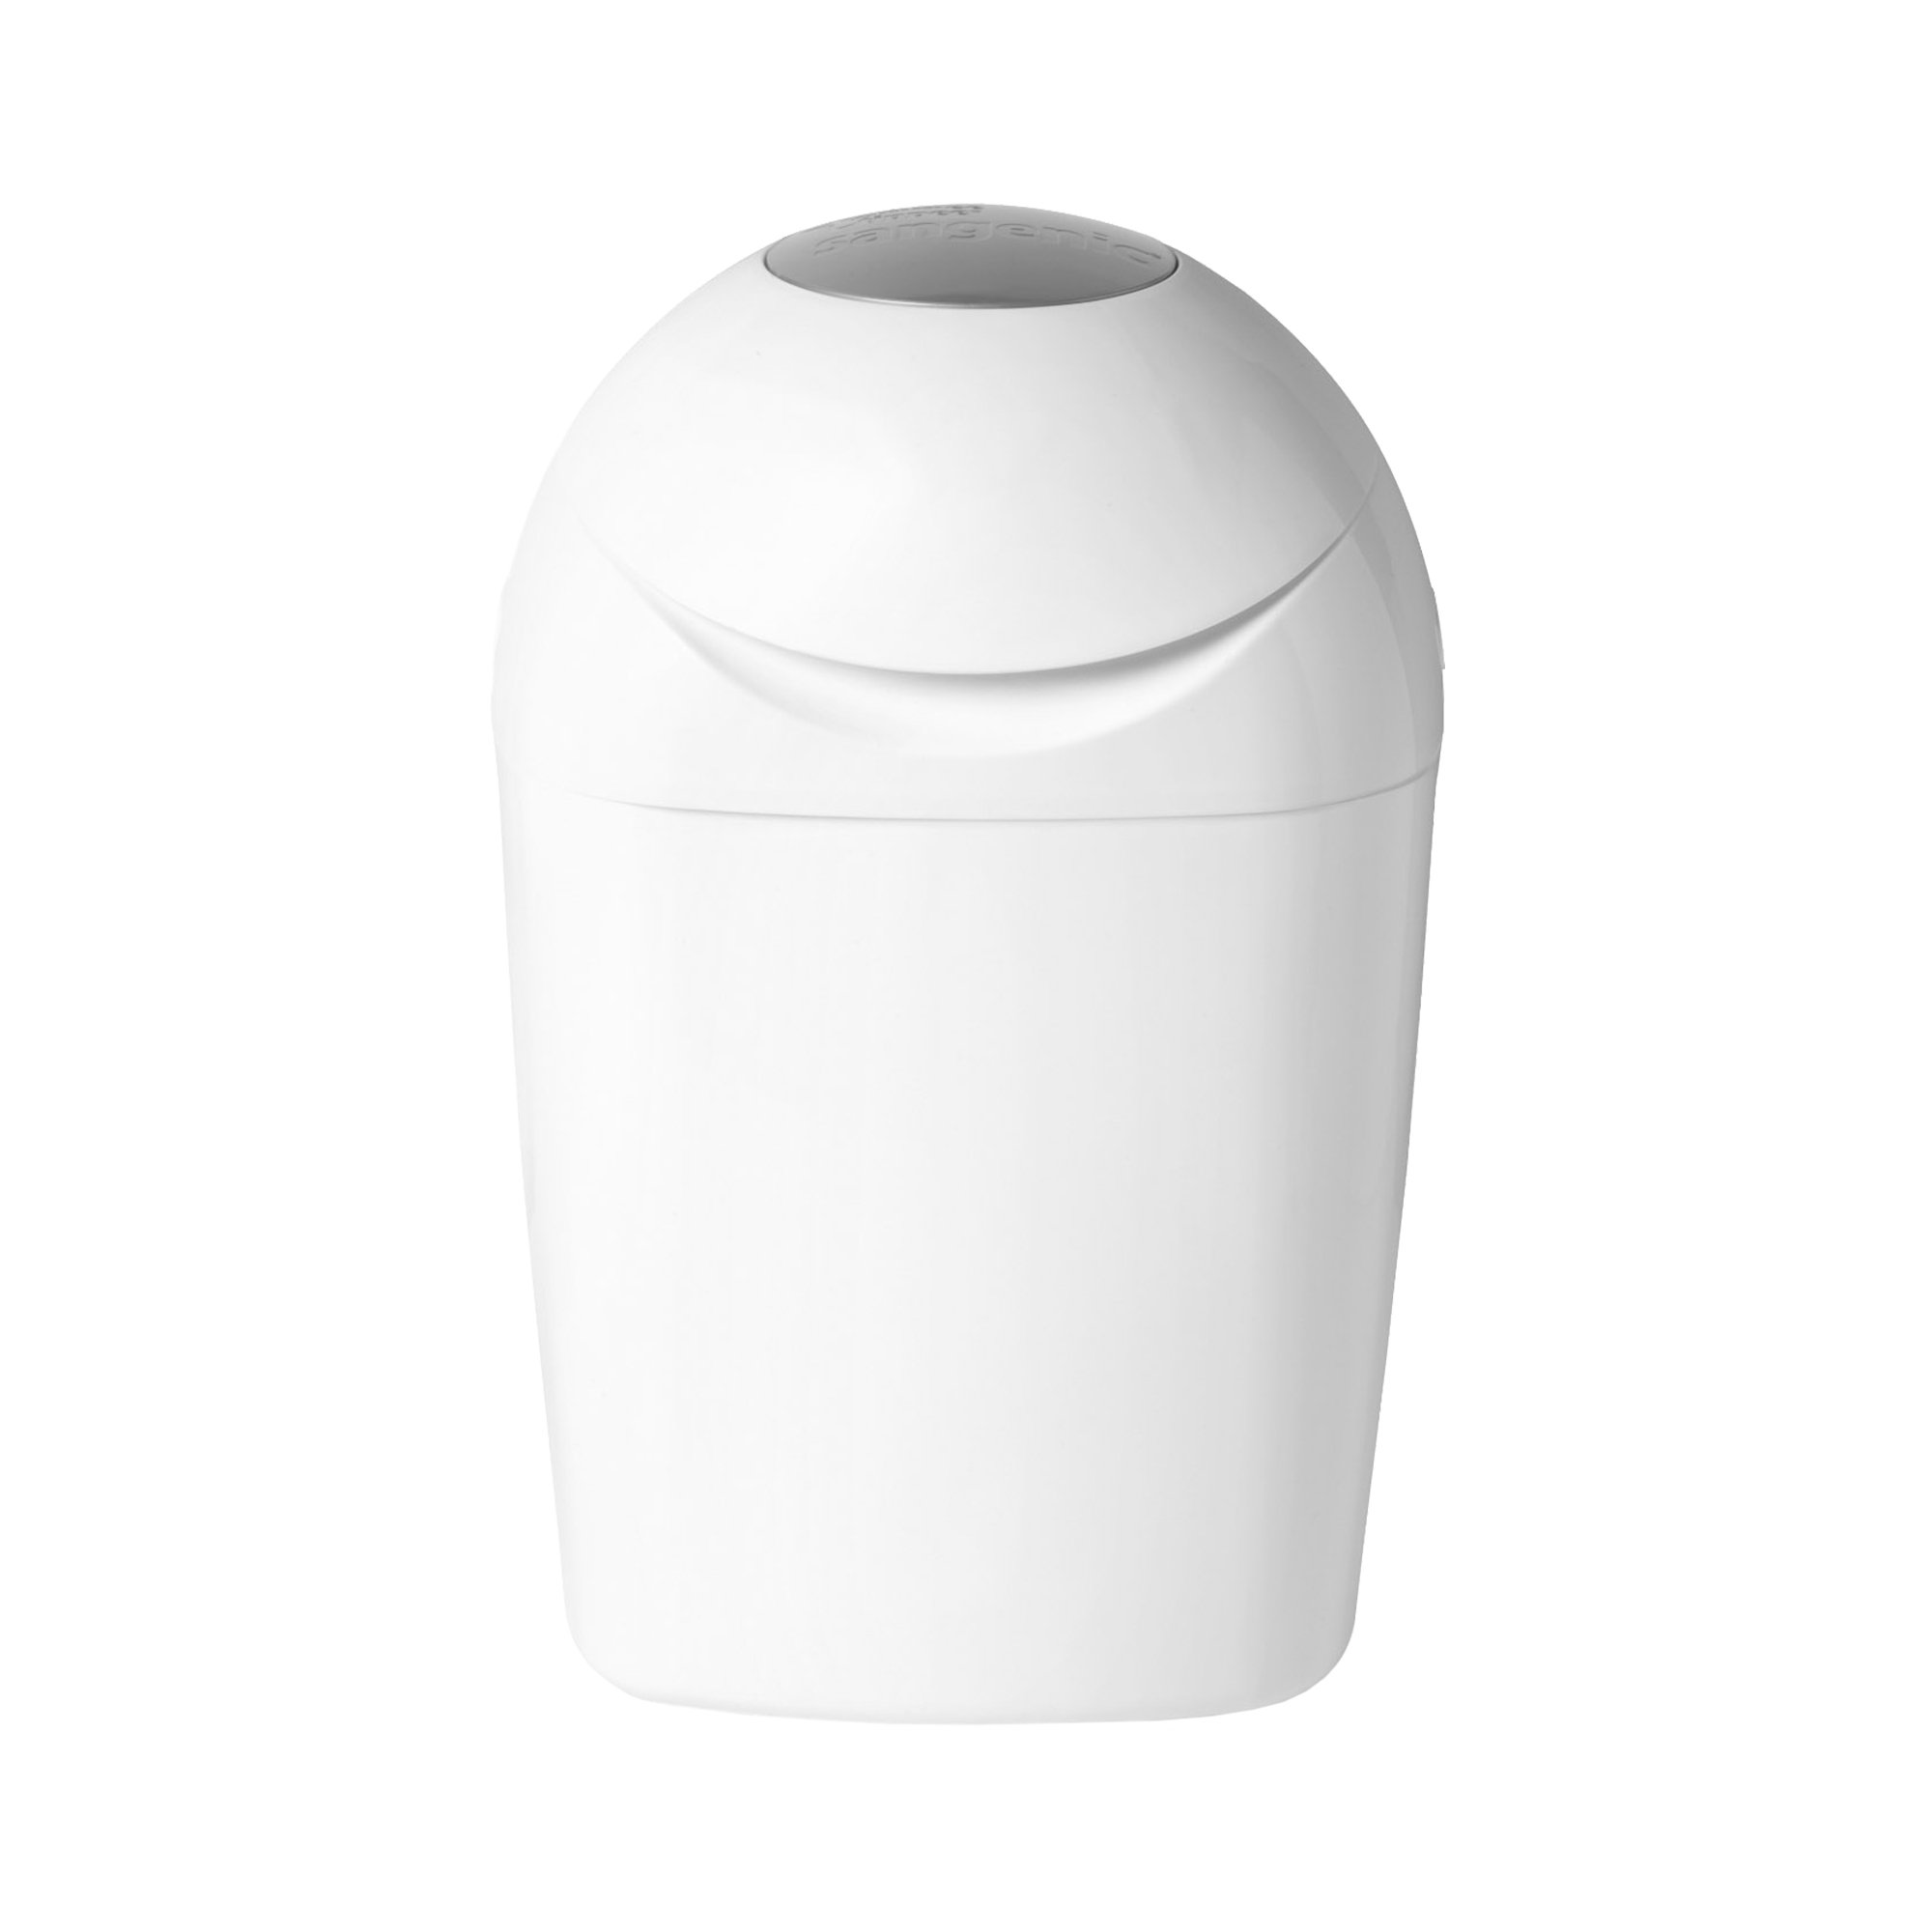 Tommee Tippee Sangenic Tec Diaper Pail by BabyCenter